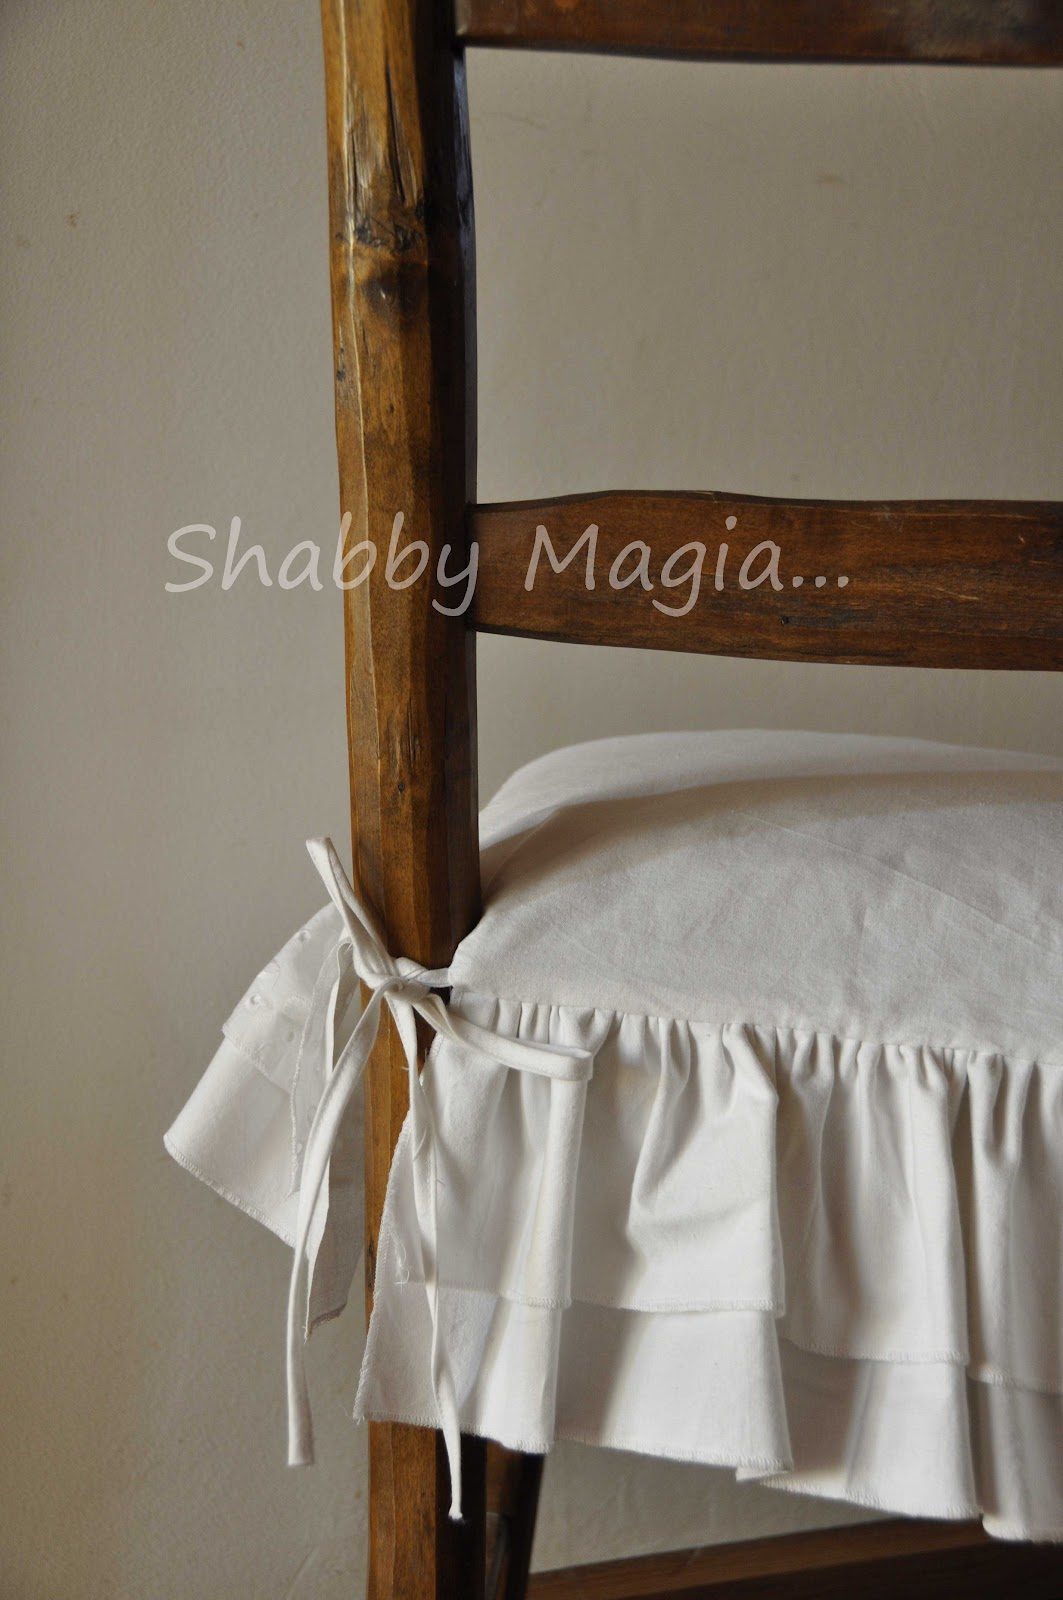 Coprisedie Shabby Chic Shabby Magia Assolutamente Vintage